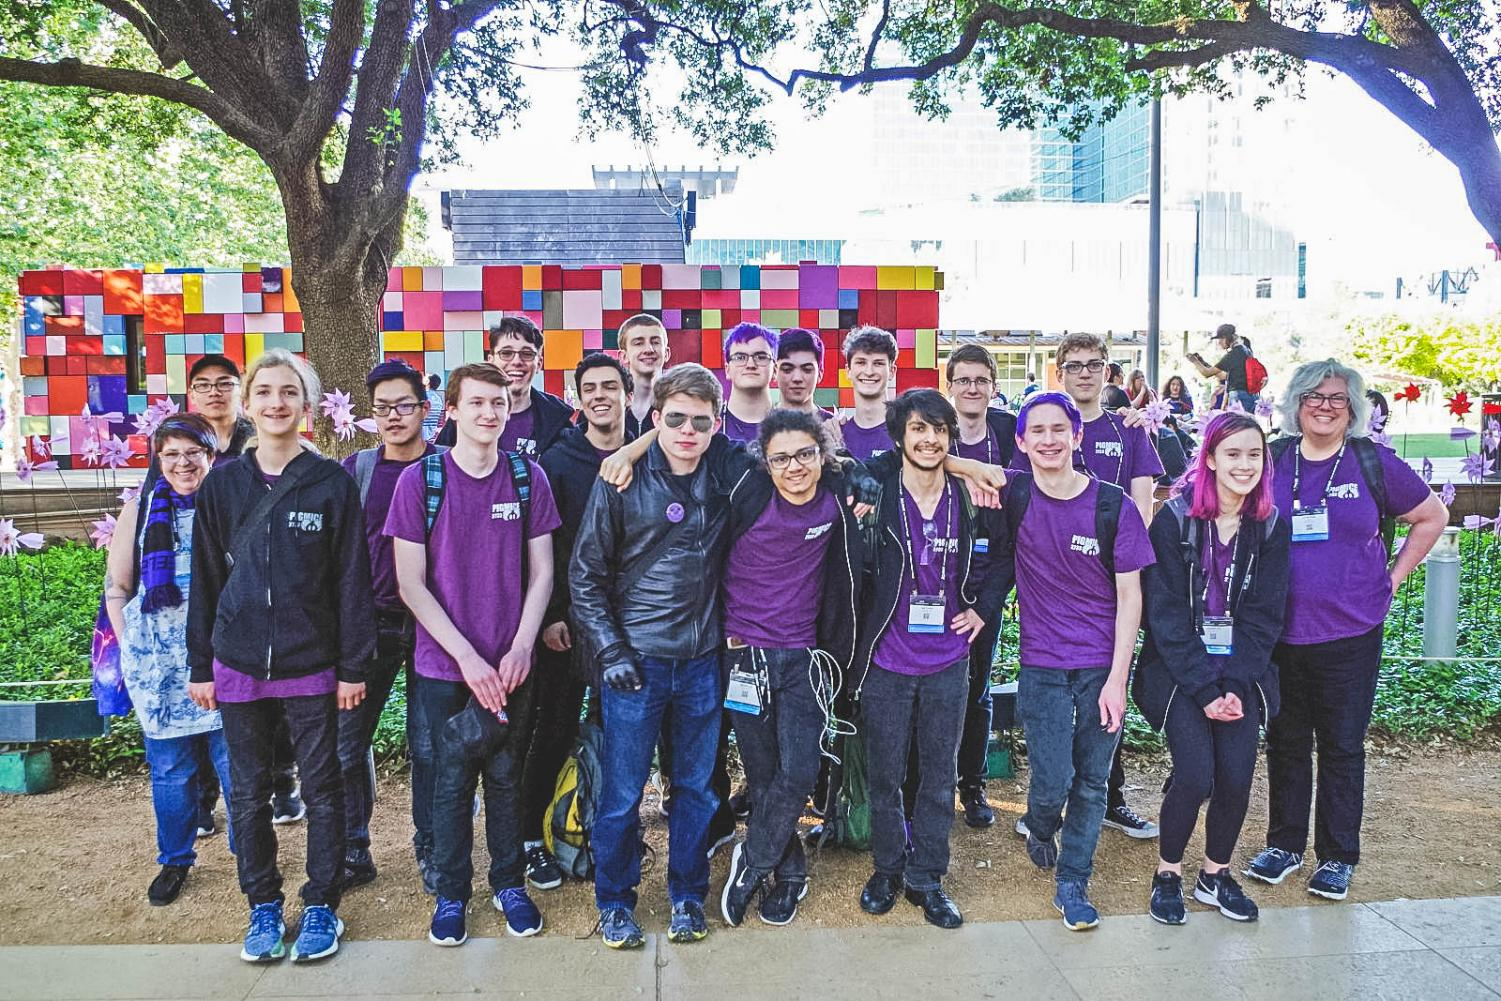 The Pigmice robotics team competed in Houston at the FIRST robotics national championships April 17-20. After joining an alliance, the team lost in the finals, taking second place in their division.